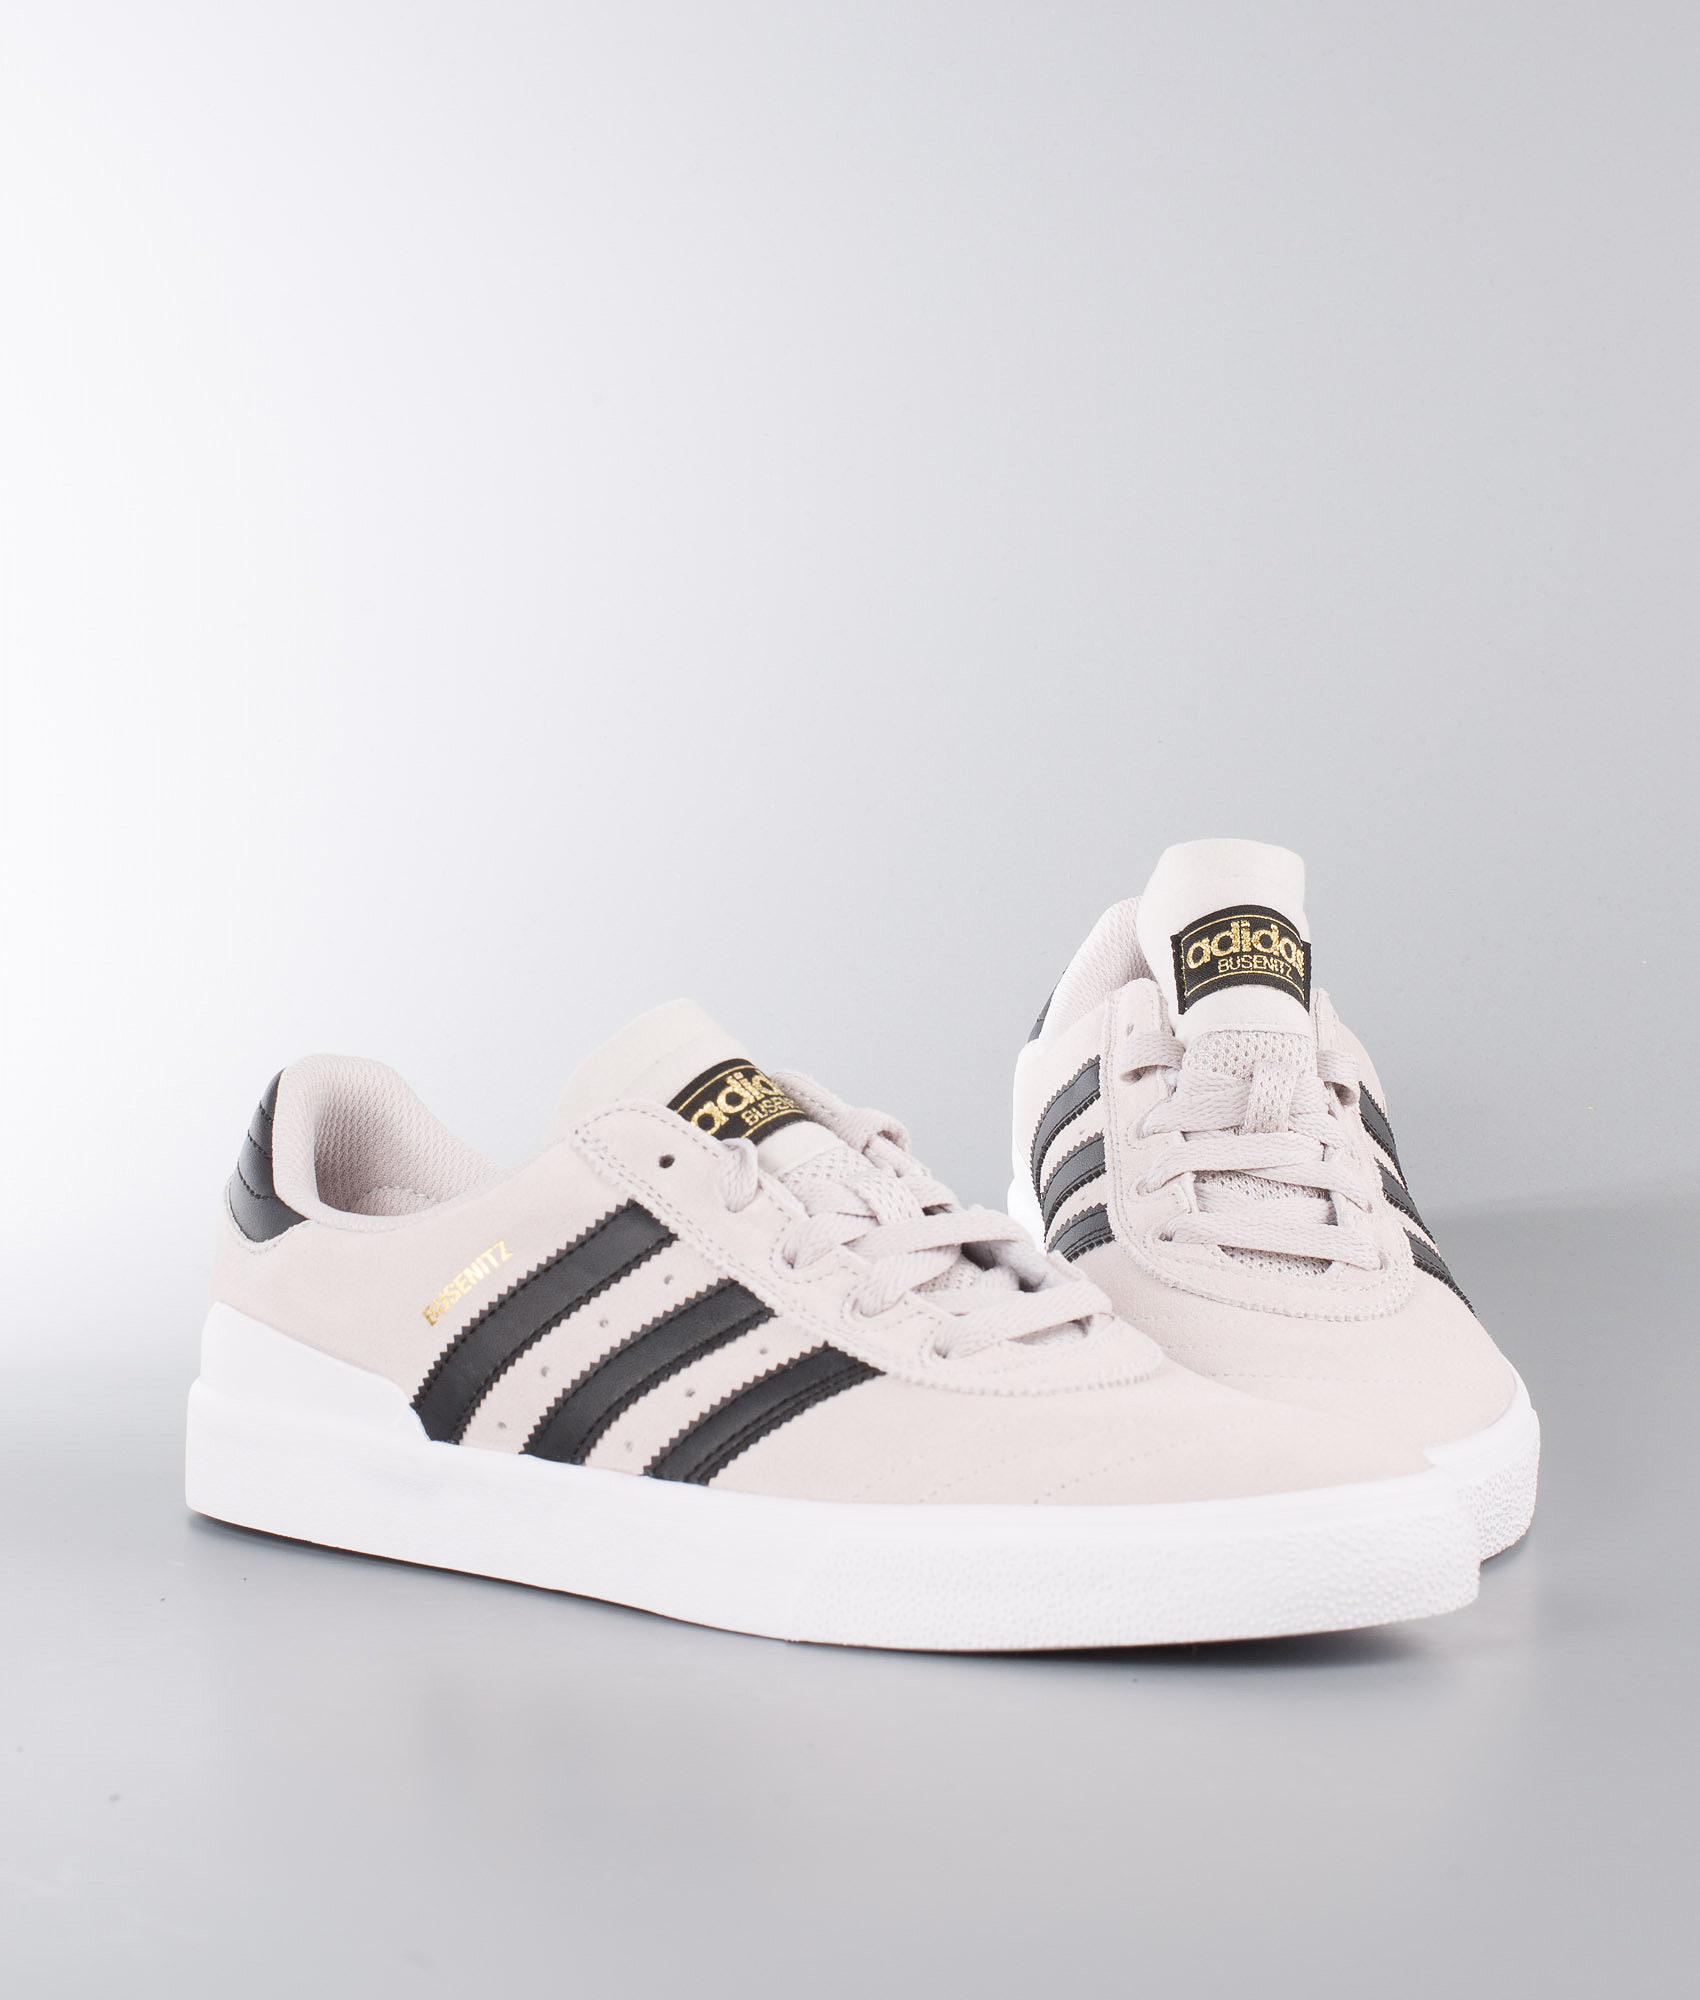 Adidas Skateboarding Busenitz Vulc Shoes Crystal White Core Black ... 55a845f110bc